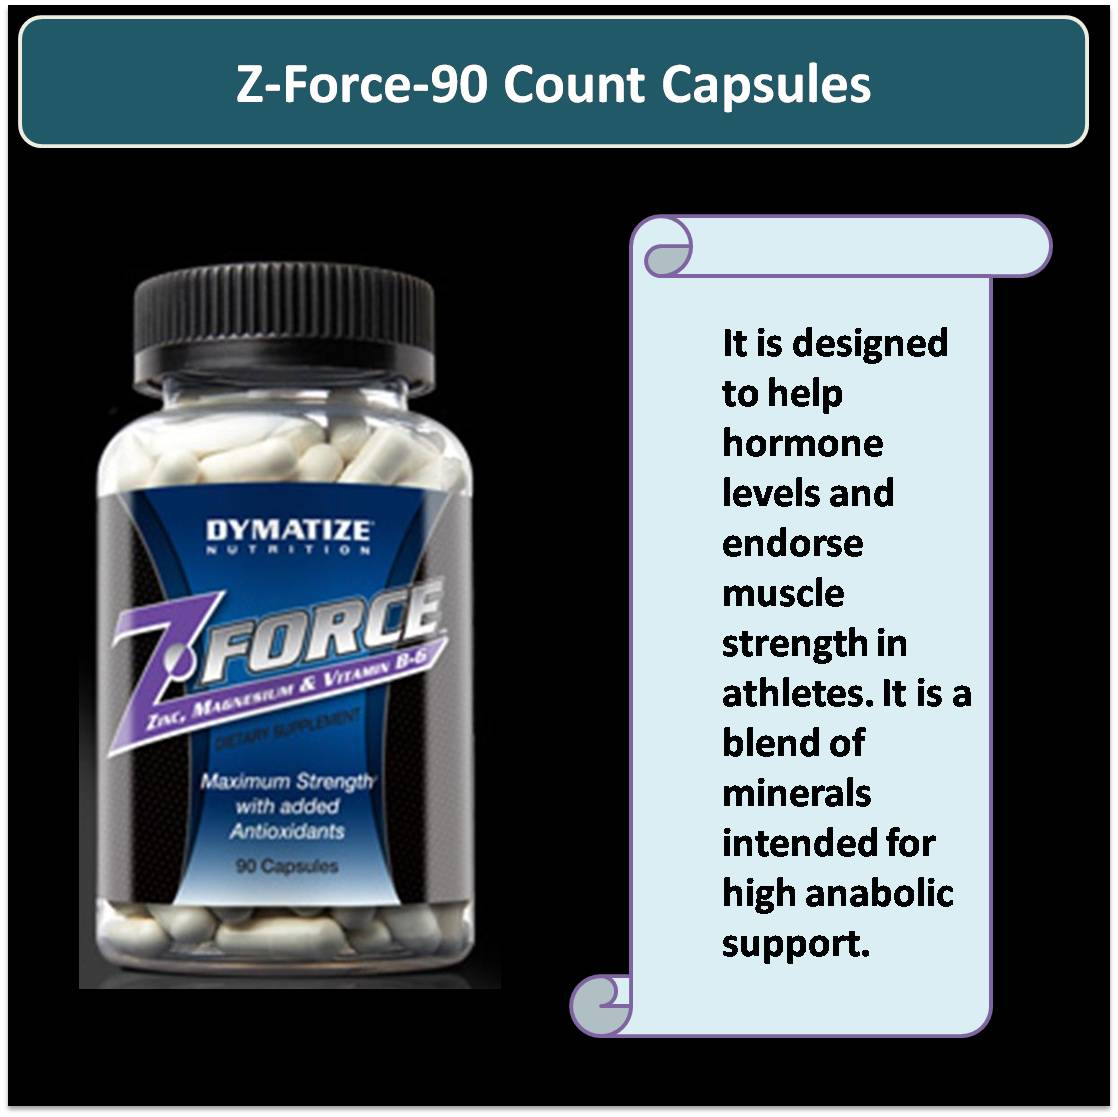 Z-Force-90 Count Capsules